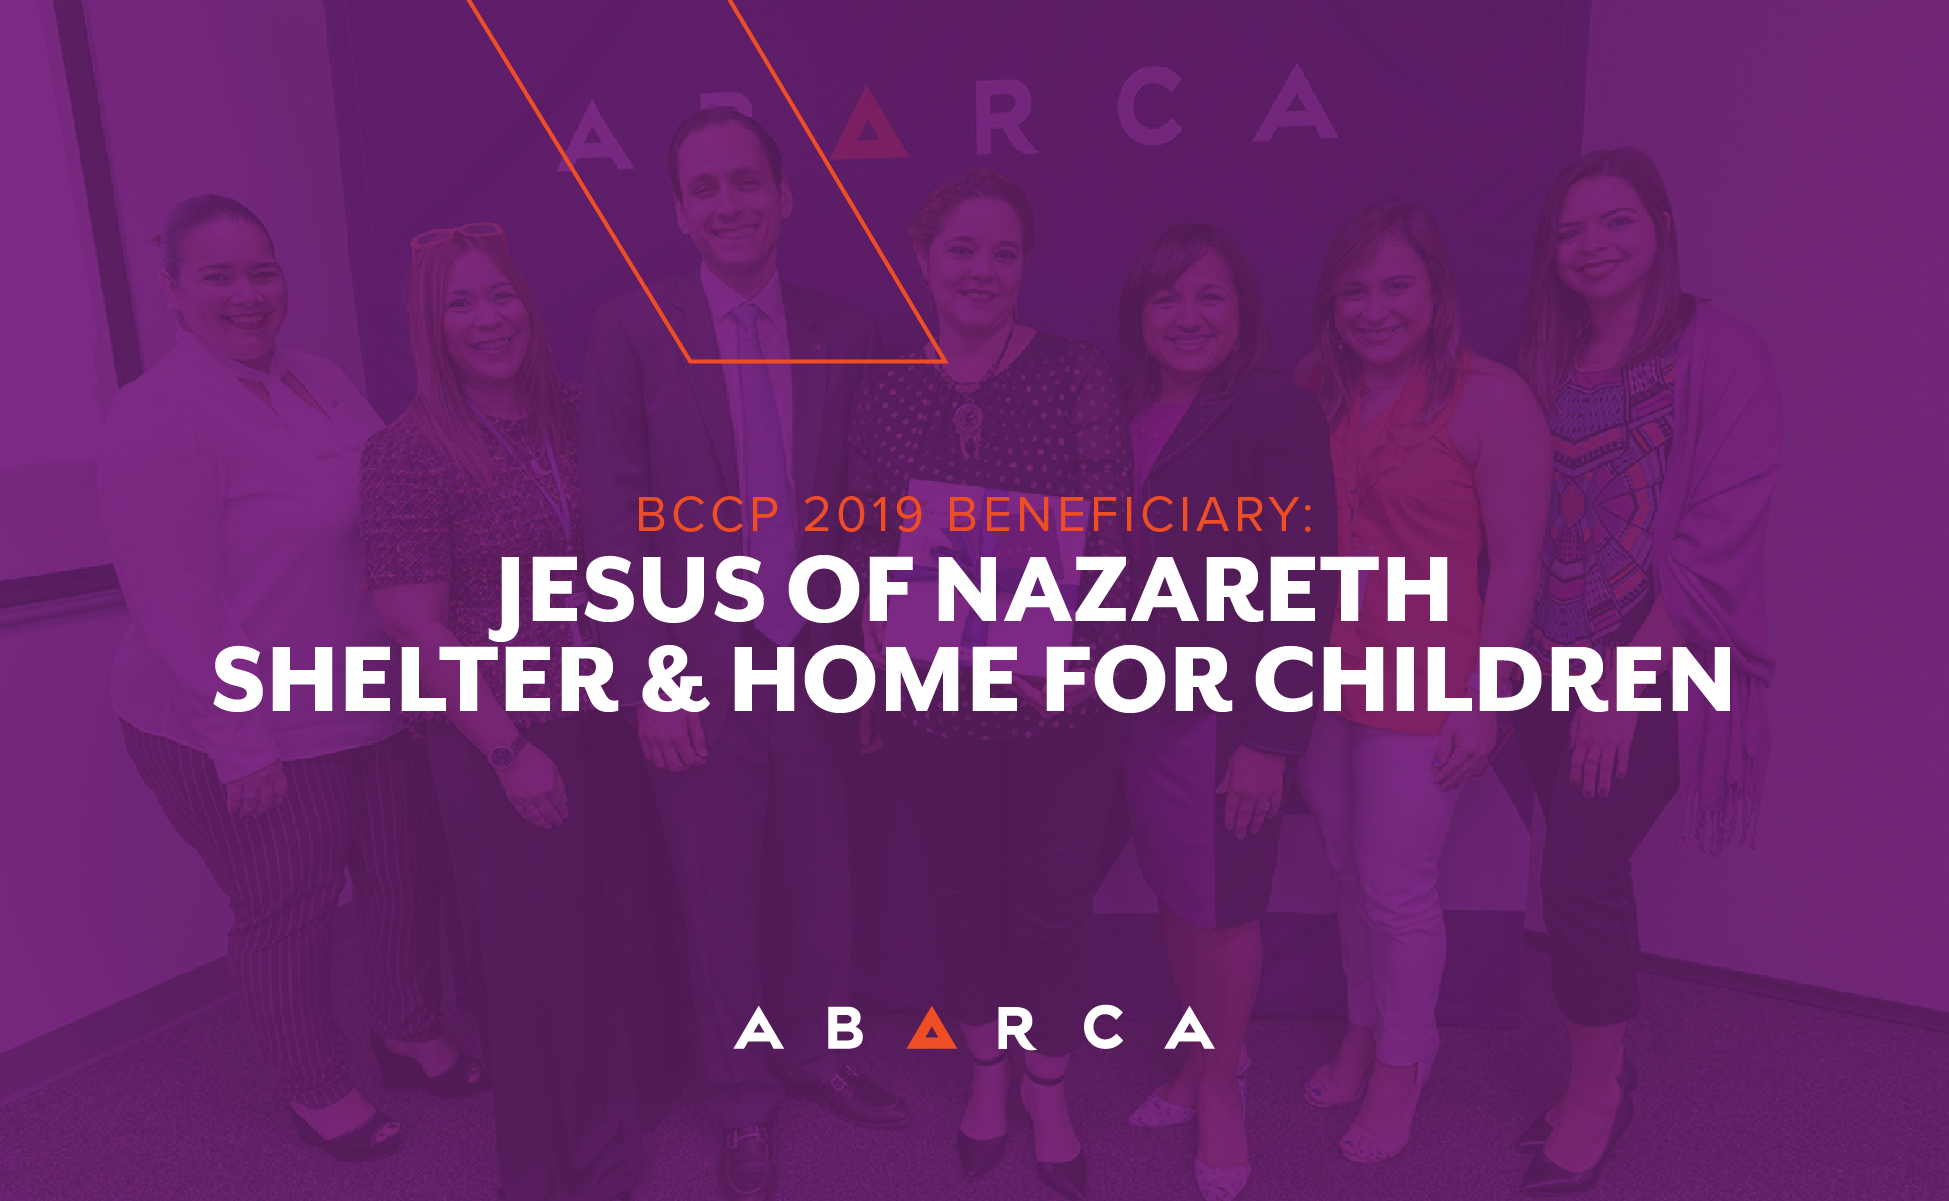 Abarca & Better Care: Transforming the Quality of Life of Children in Need